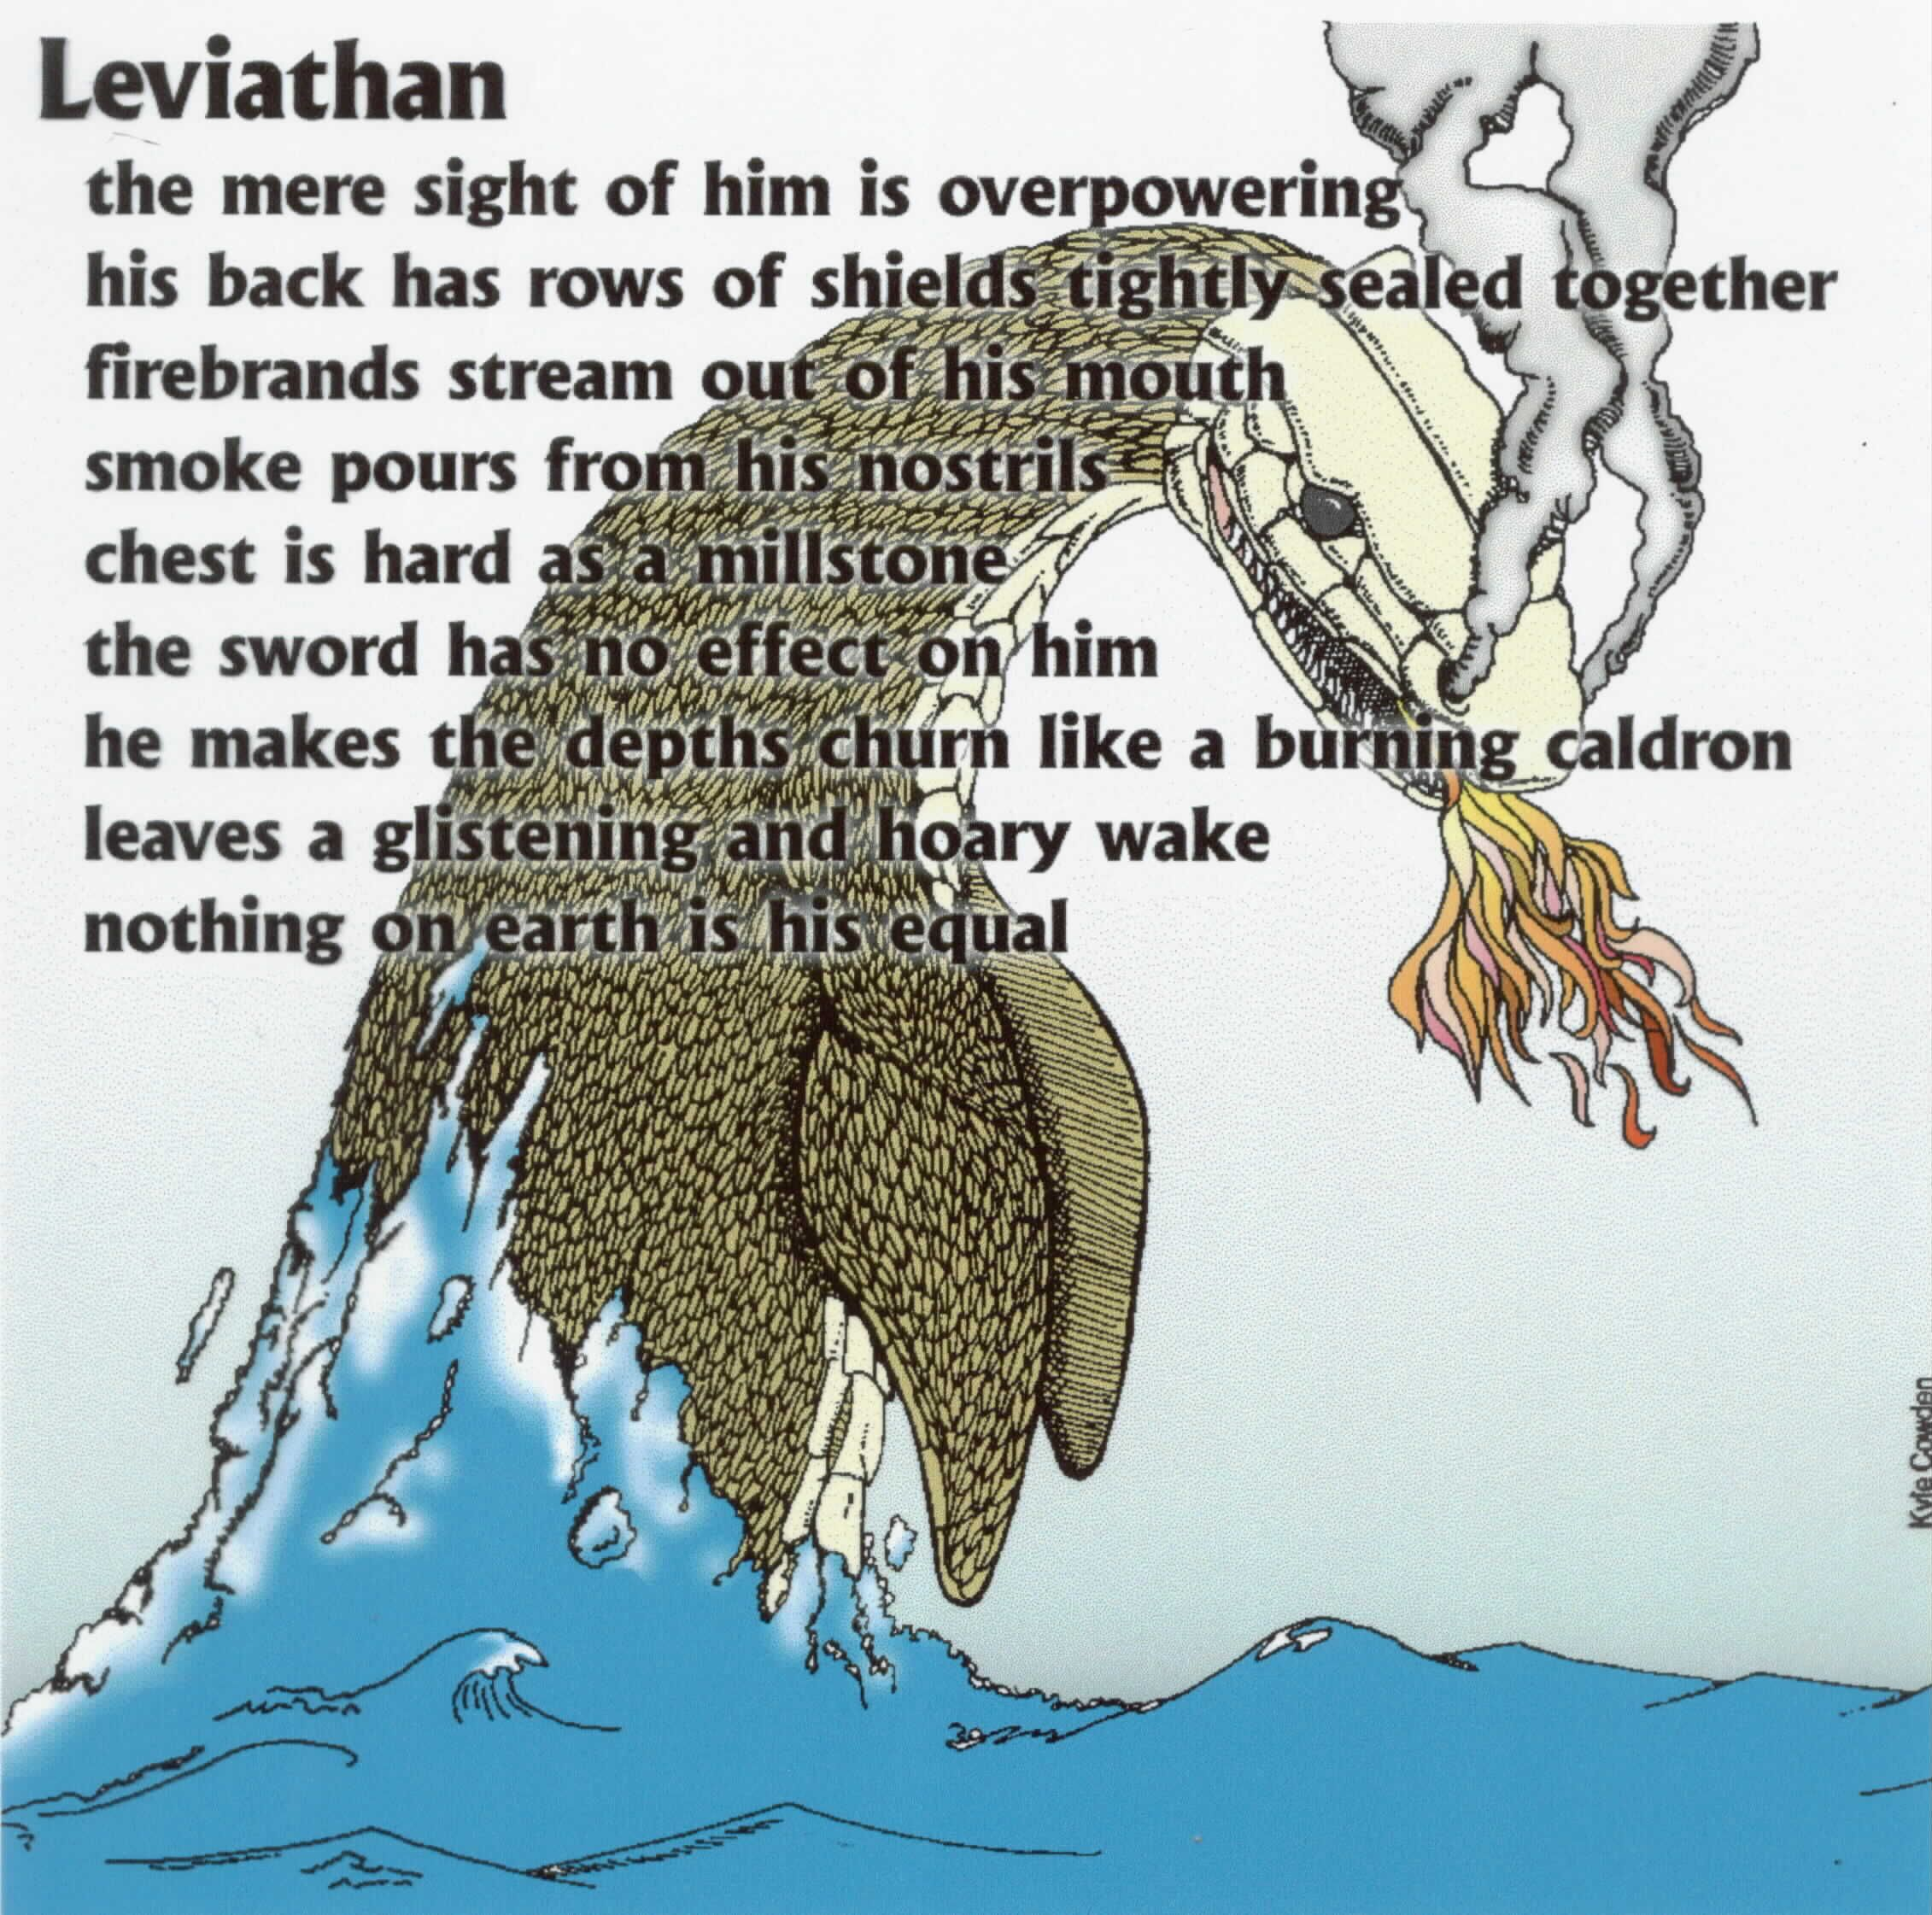 leviathan a possible sarcosuchus described in the book of job chapter 41